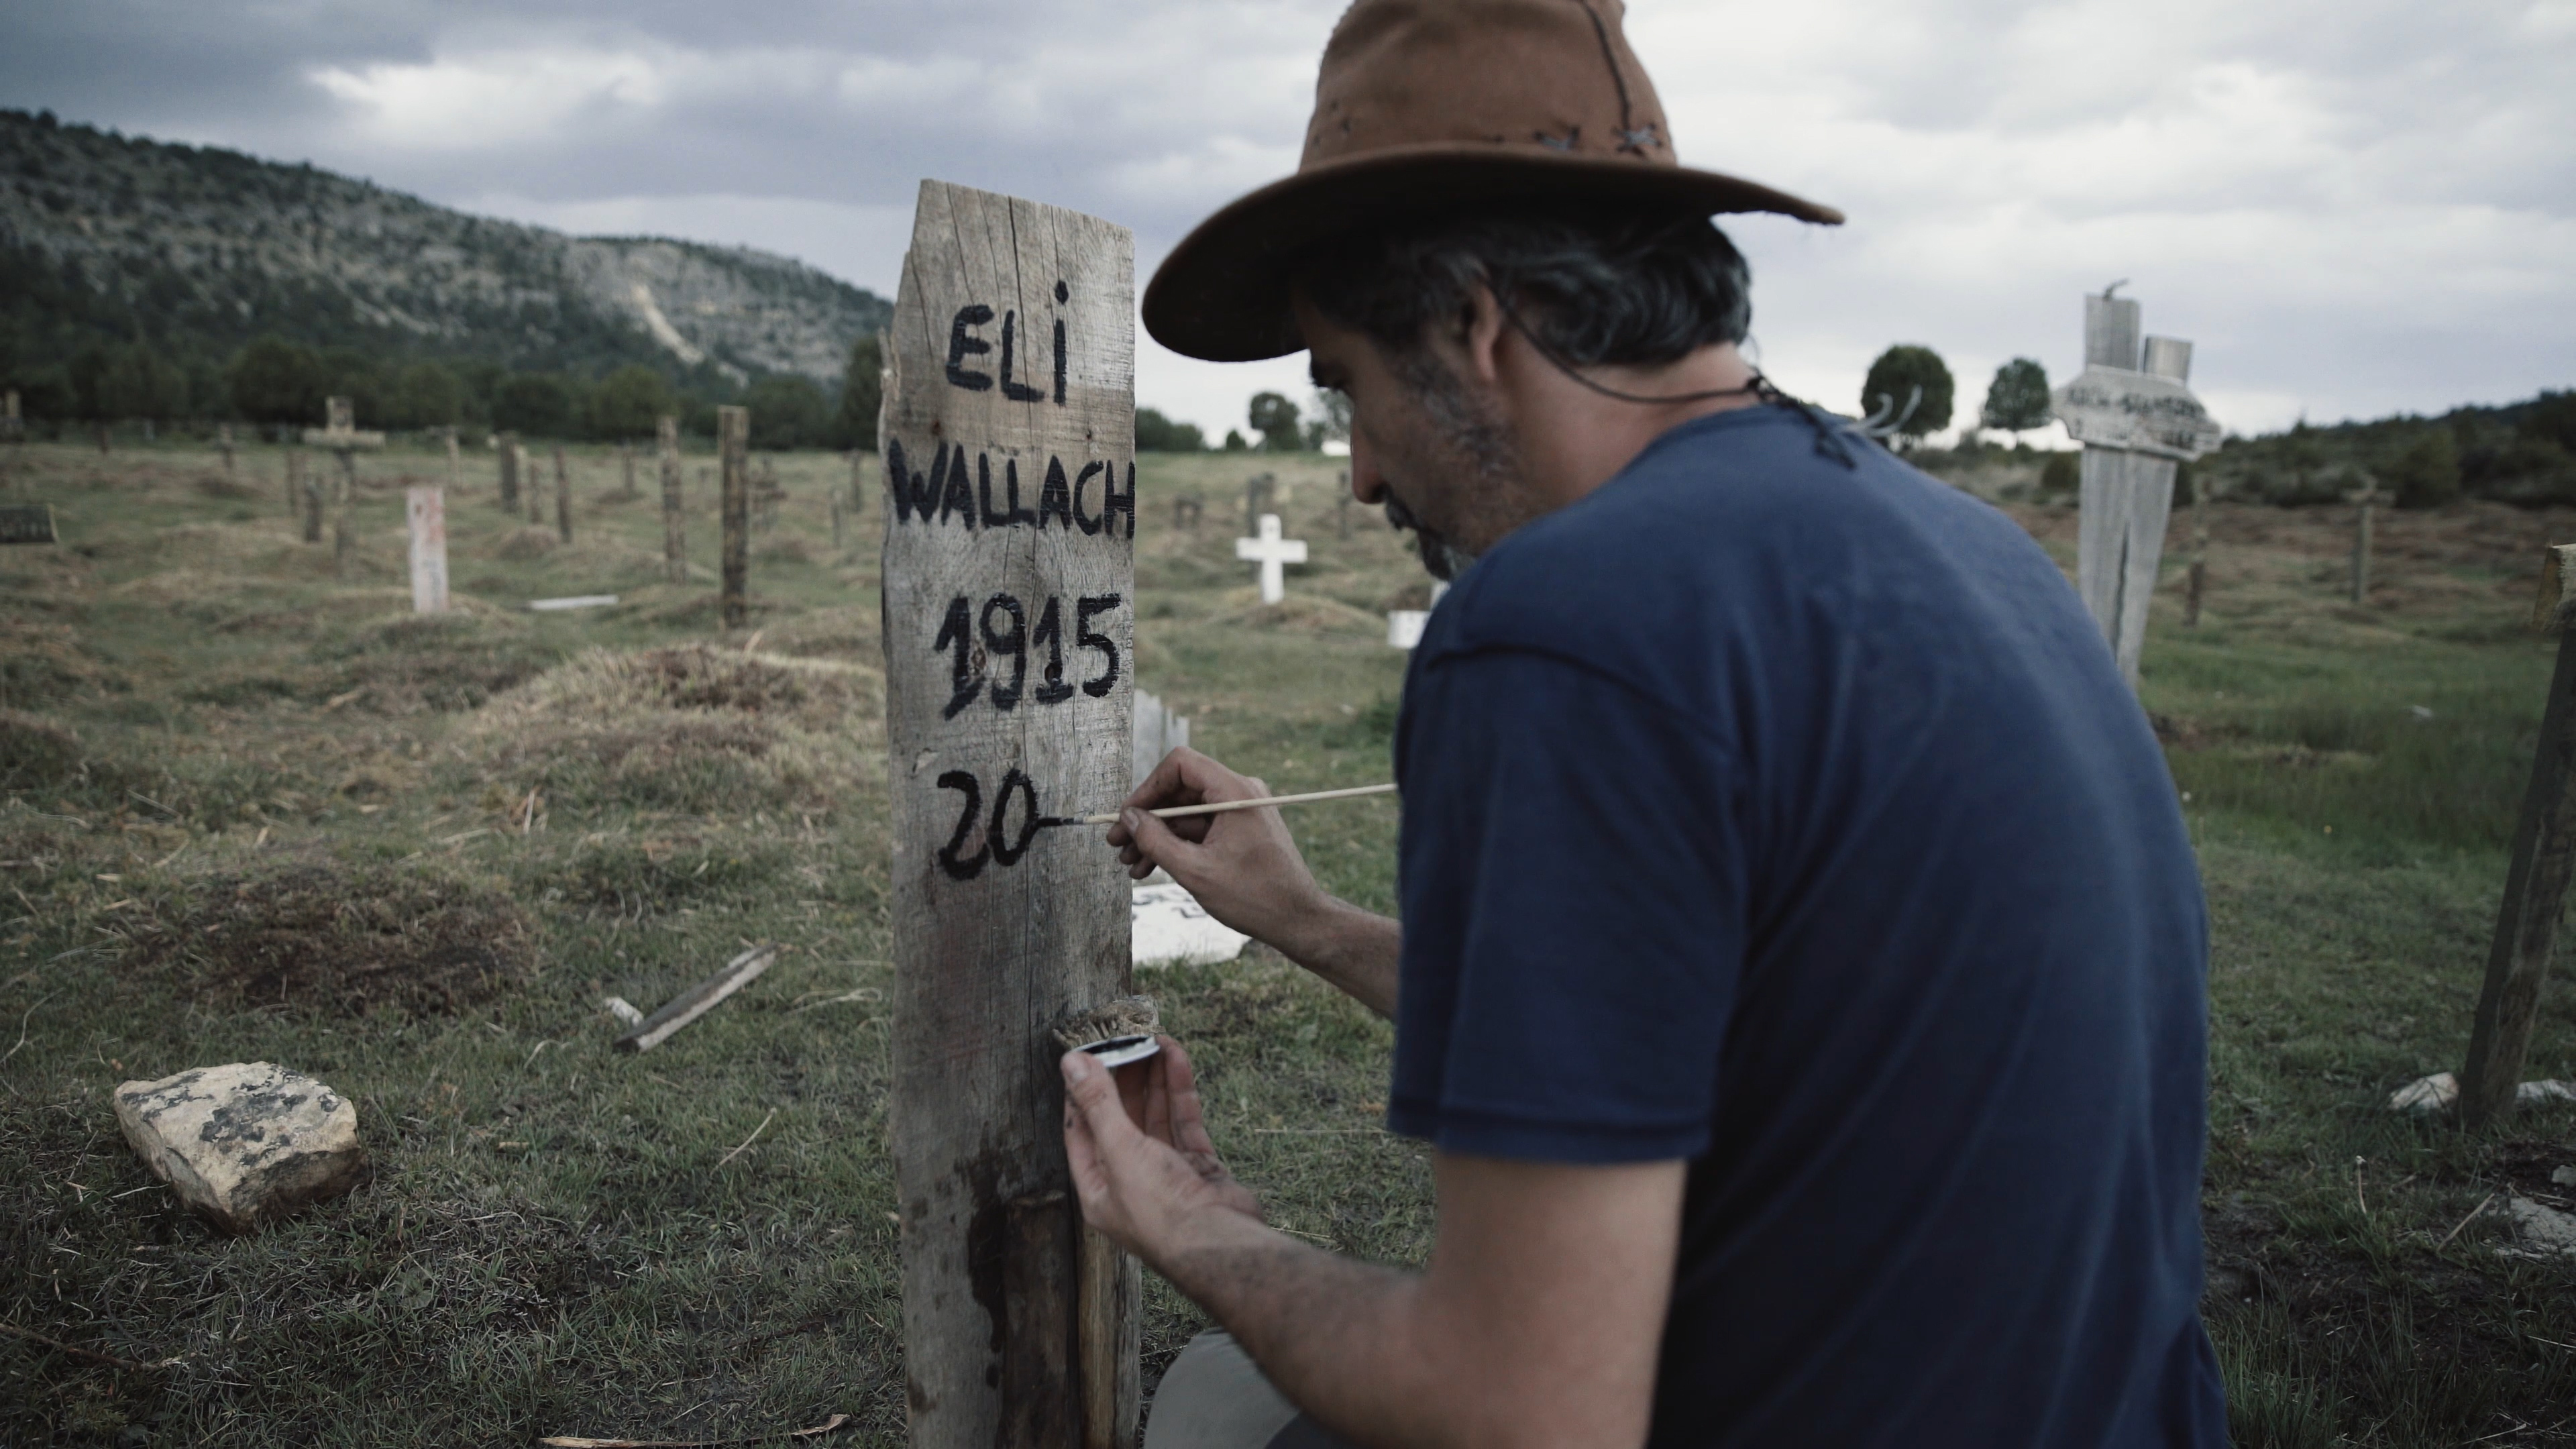 Eli Wallach grave at Sad Hill Cemetery